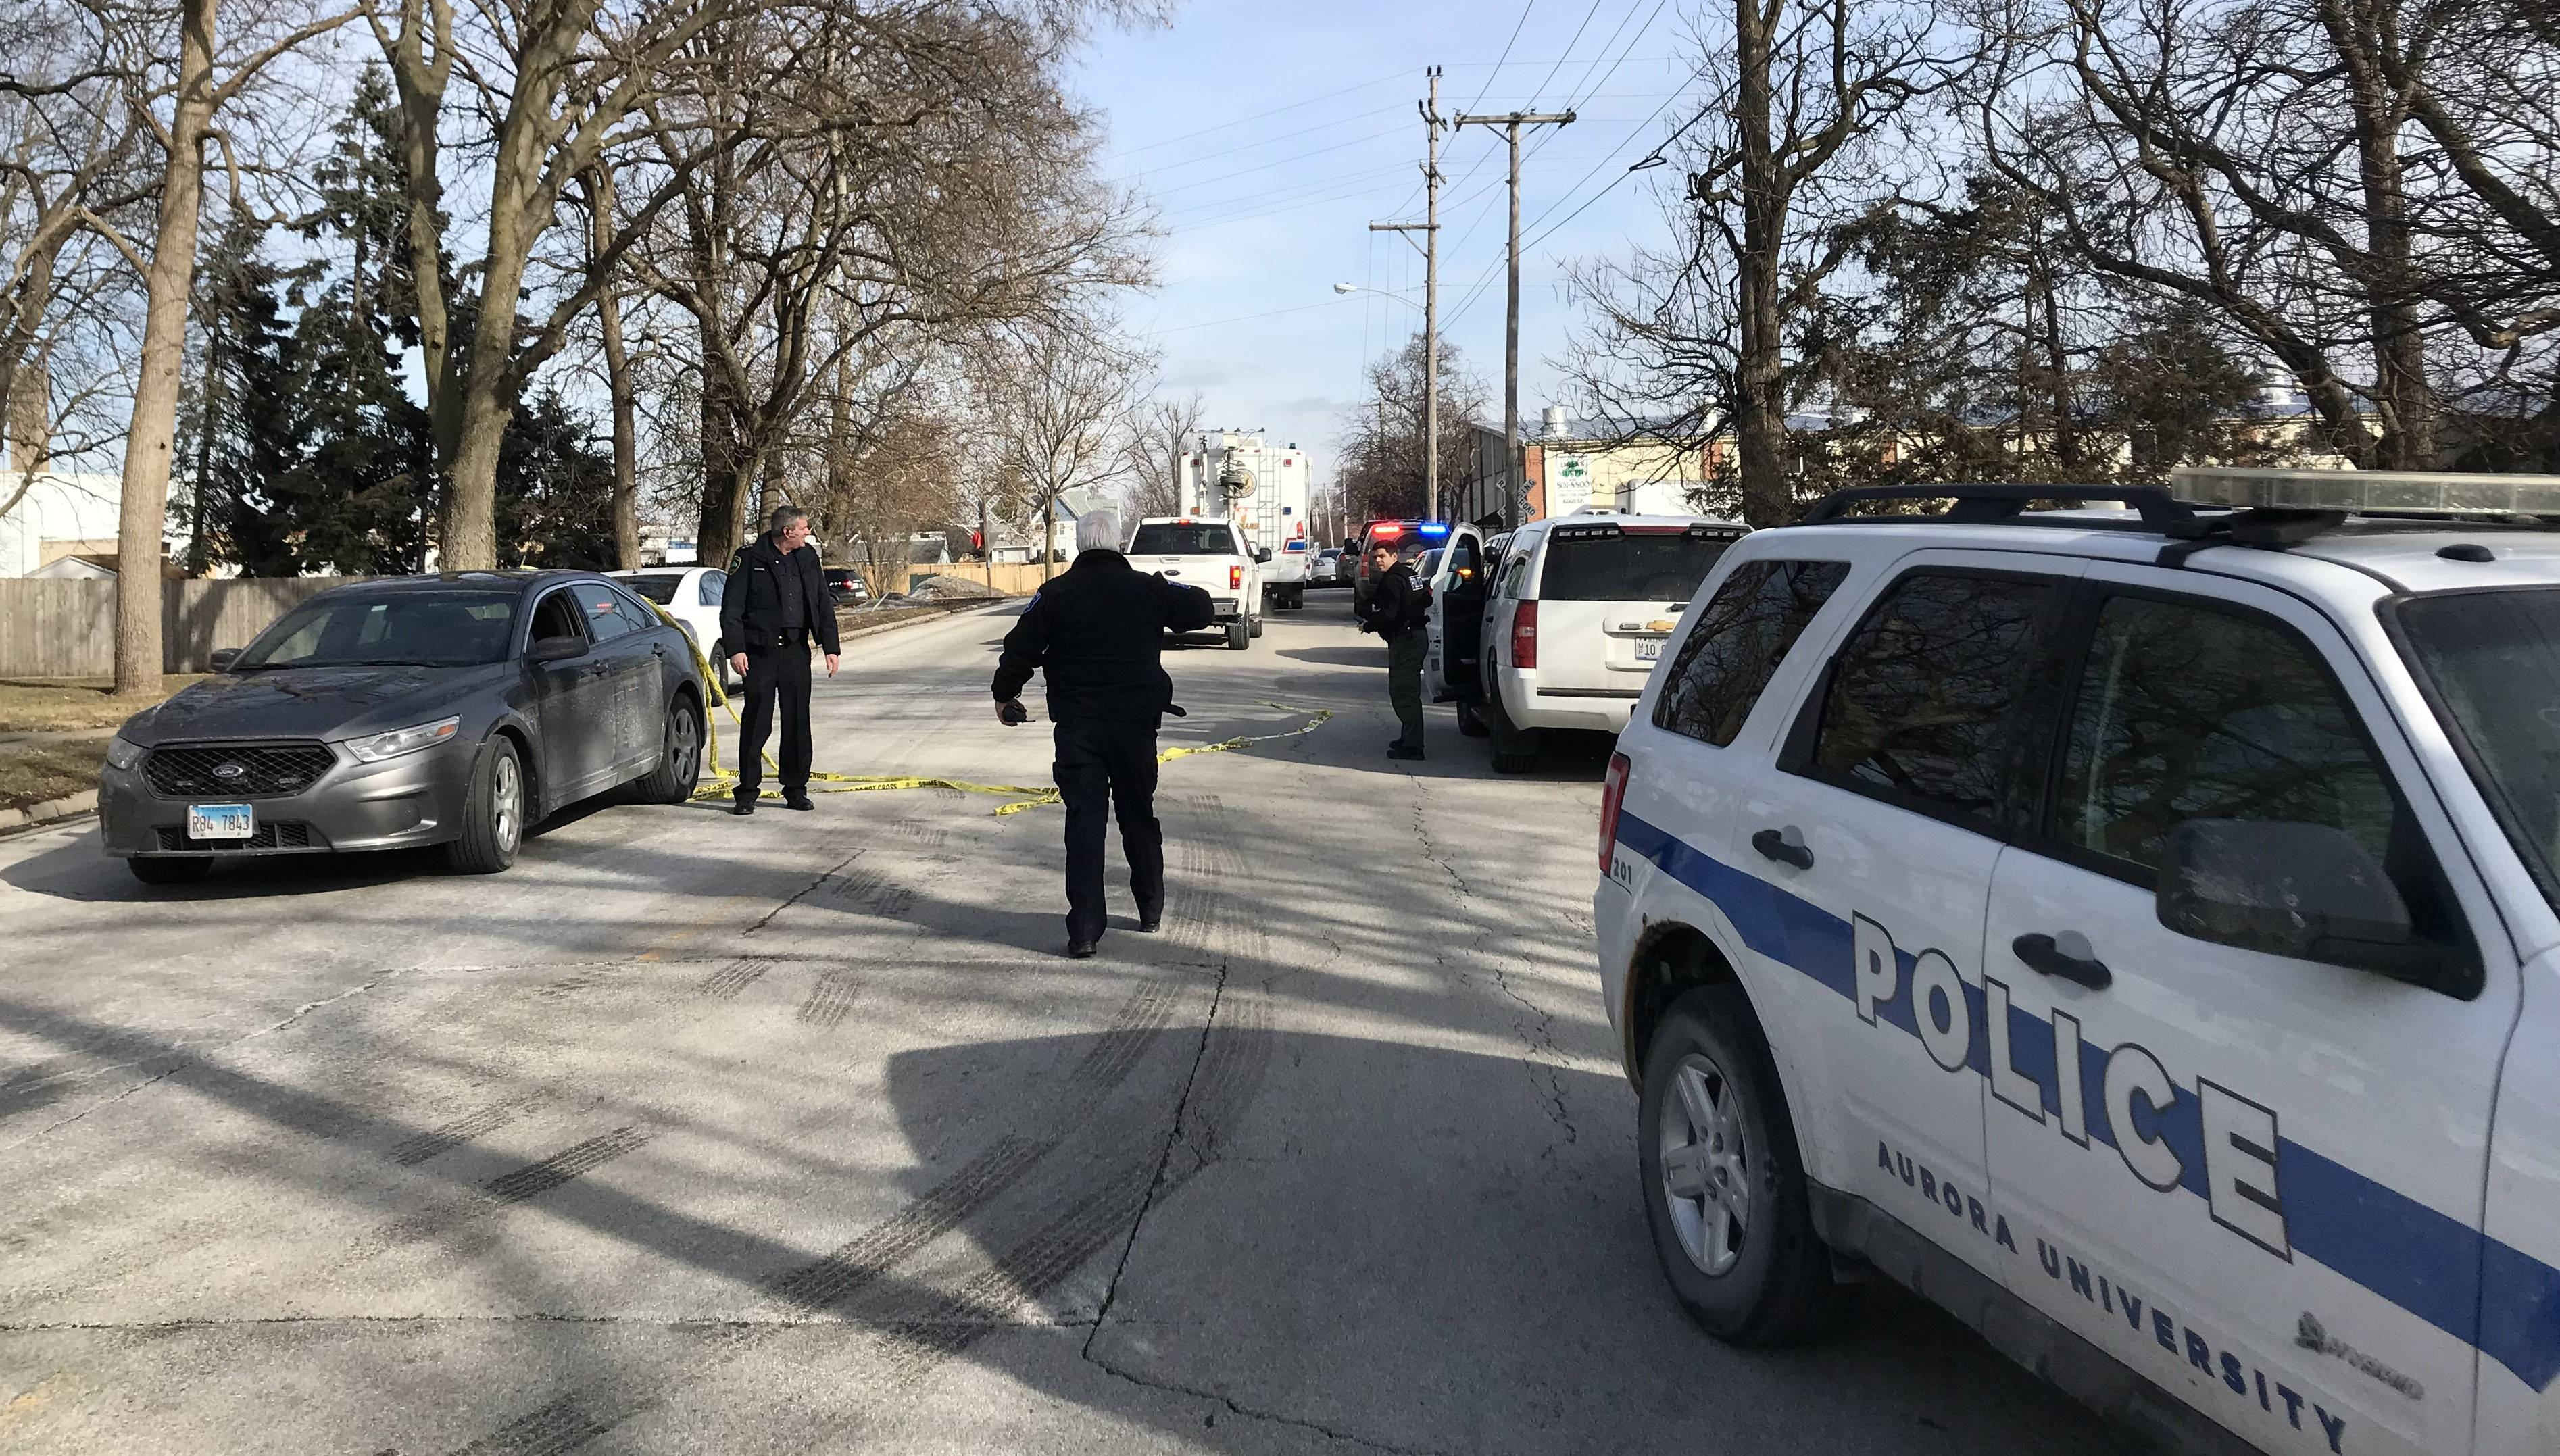 Police officers from throughout the suburbs respond to a mass shooting in Aurora that left six people dead, including the shooter, and wounded five police officers and multiple civilians.